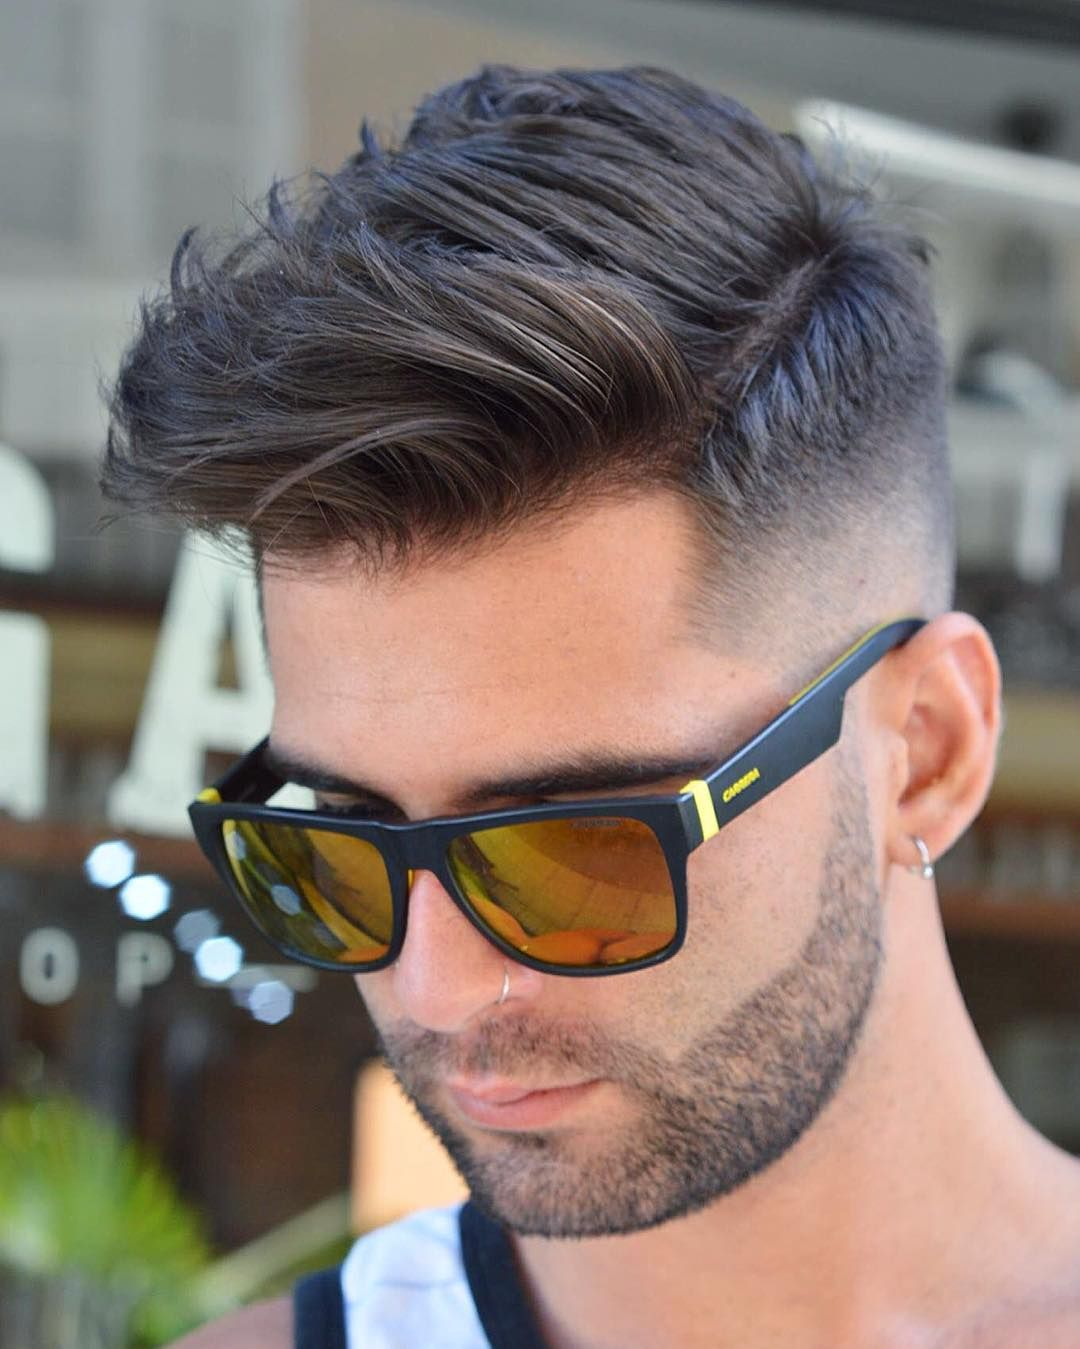 Hair Cuts Charming New Cut Gents Hairstyles For Men Update Style Man Mens